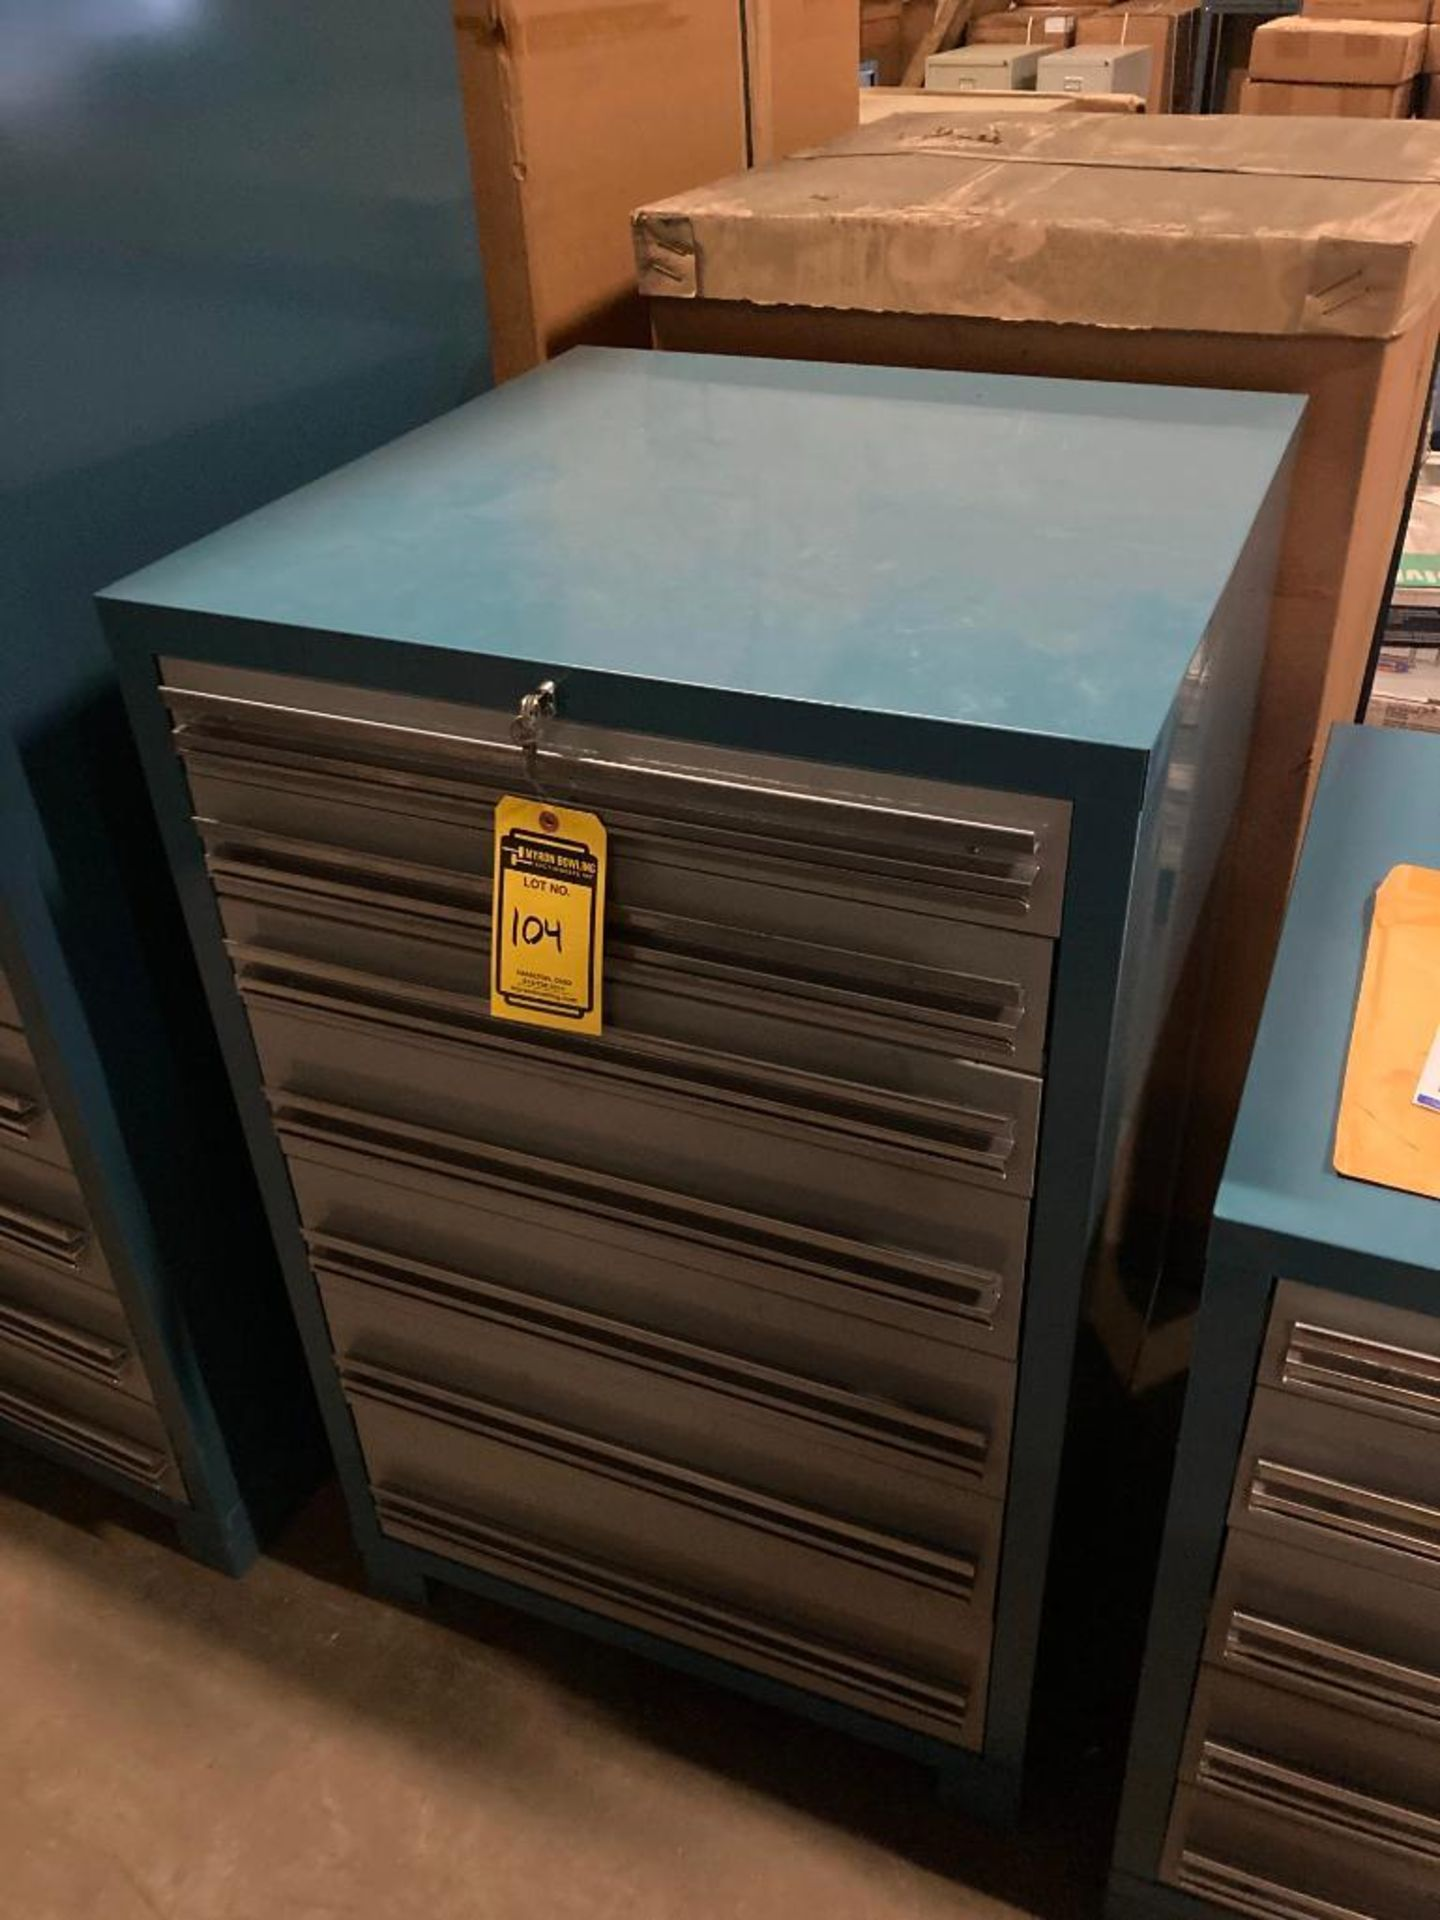 (NEW) EDSAL 7-DRAWER HEAVY DUTY MODULAR TOOLING CABINET, 28.25''W X 44.5''H X 28.25''D, MODEL MDC-7 - Image 2 of 2